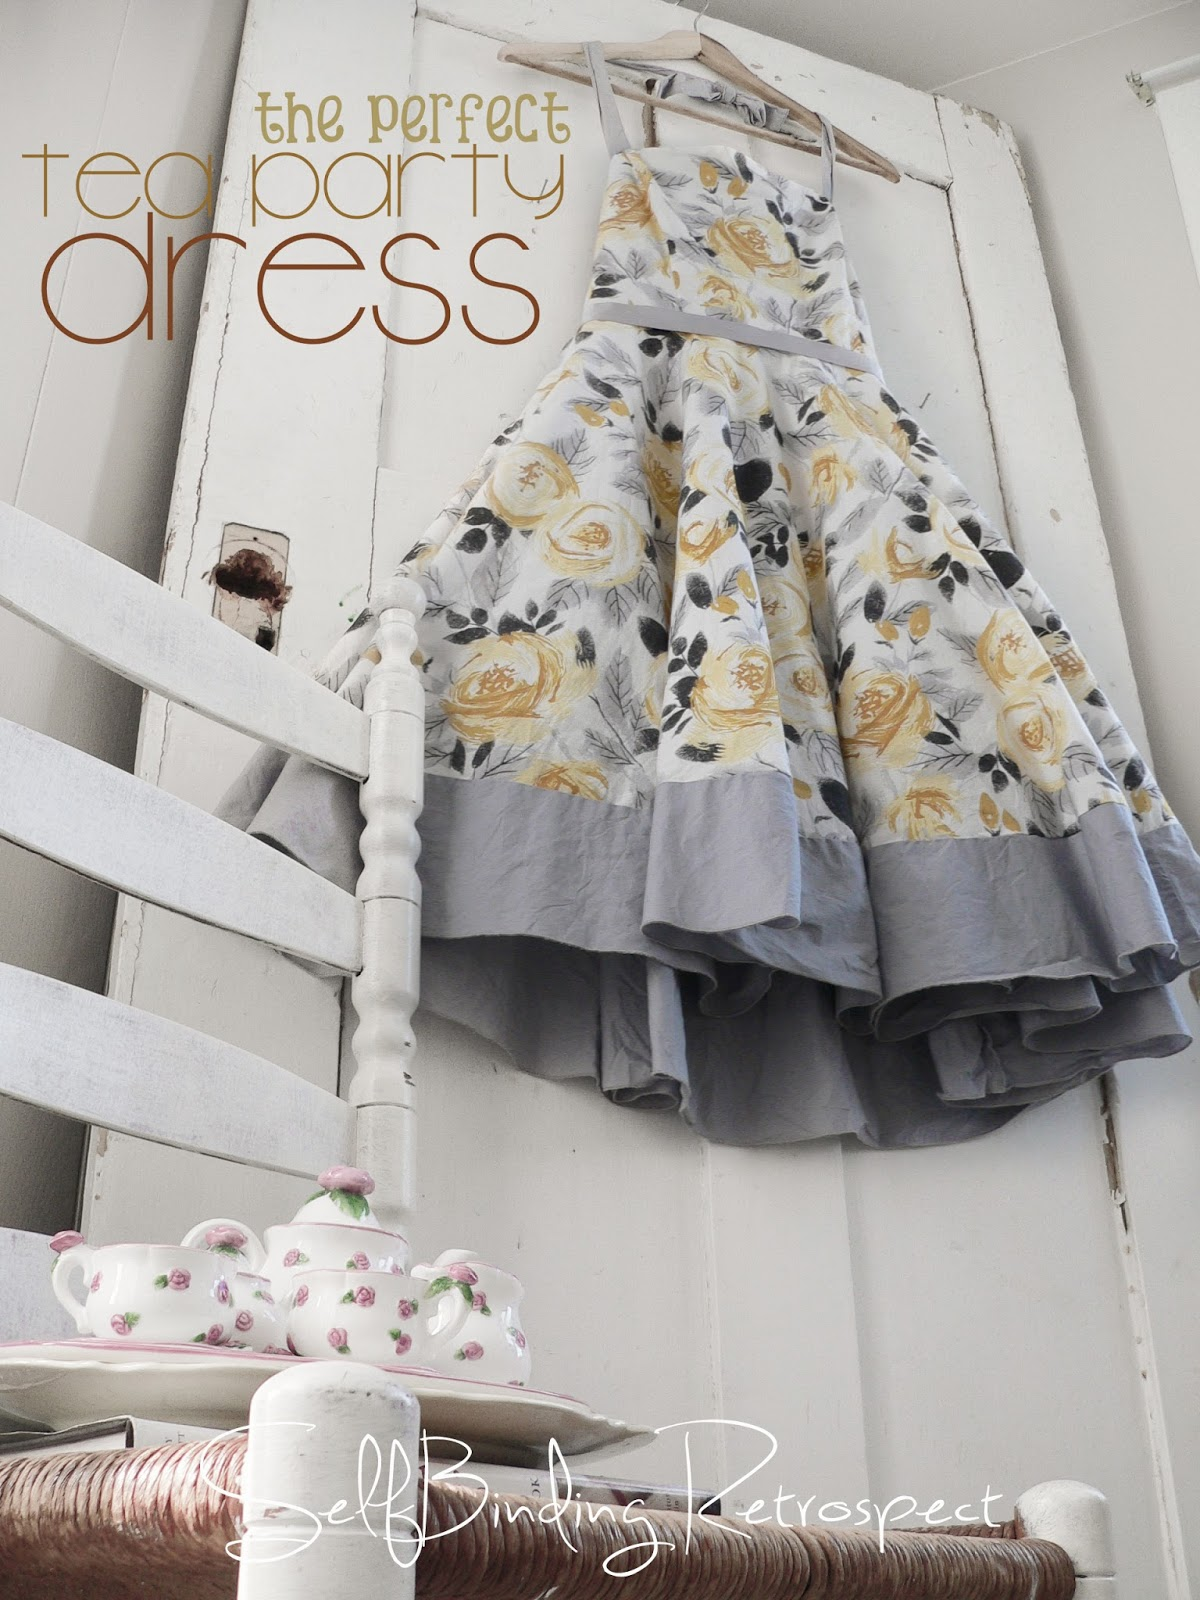 The Perfect Tea Party Dress - SelfBinding Retrospect by Alanna Rusnak